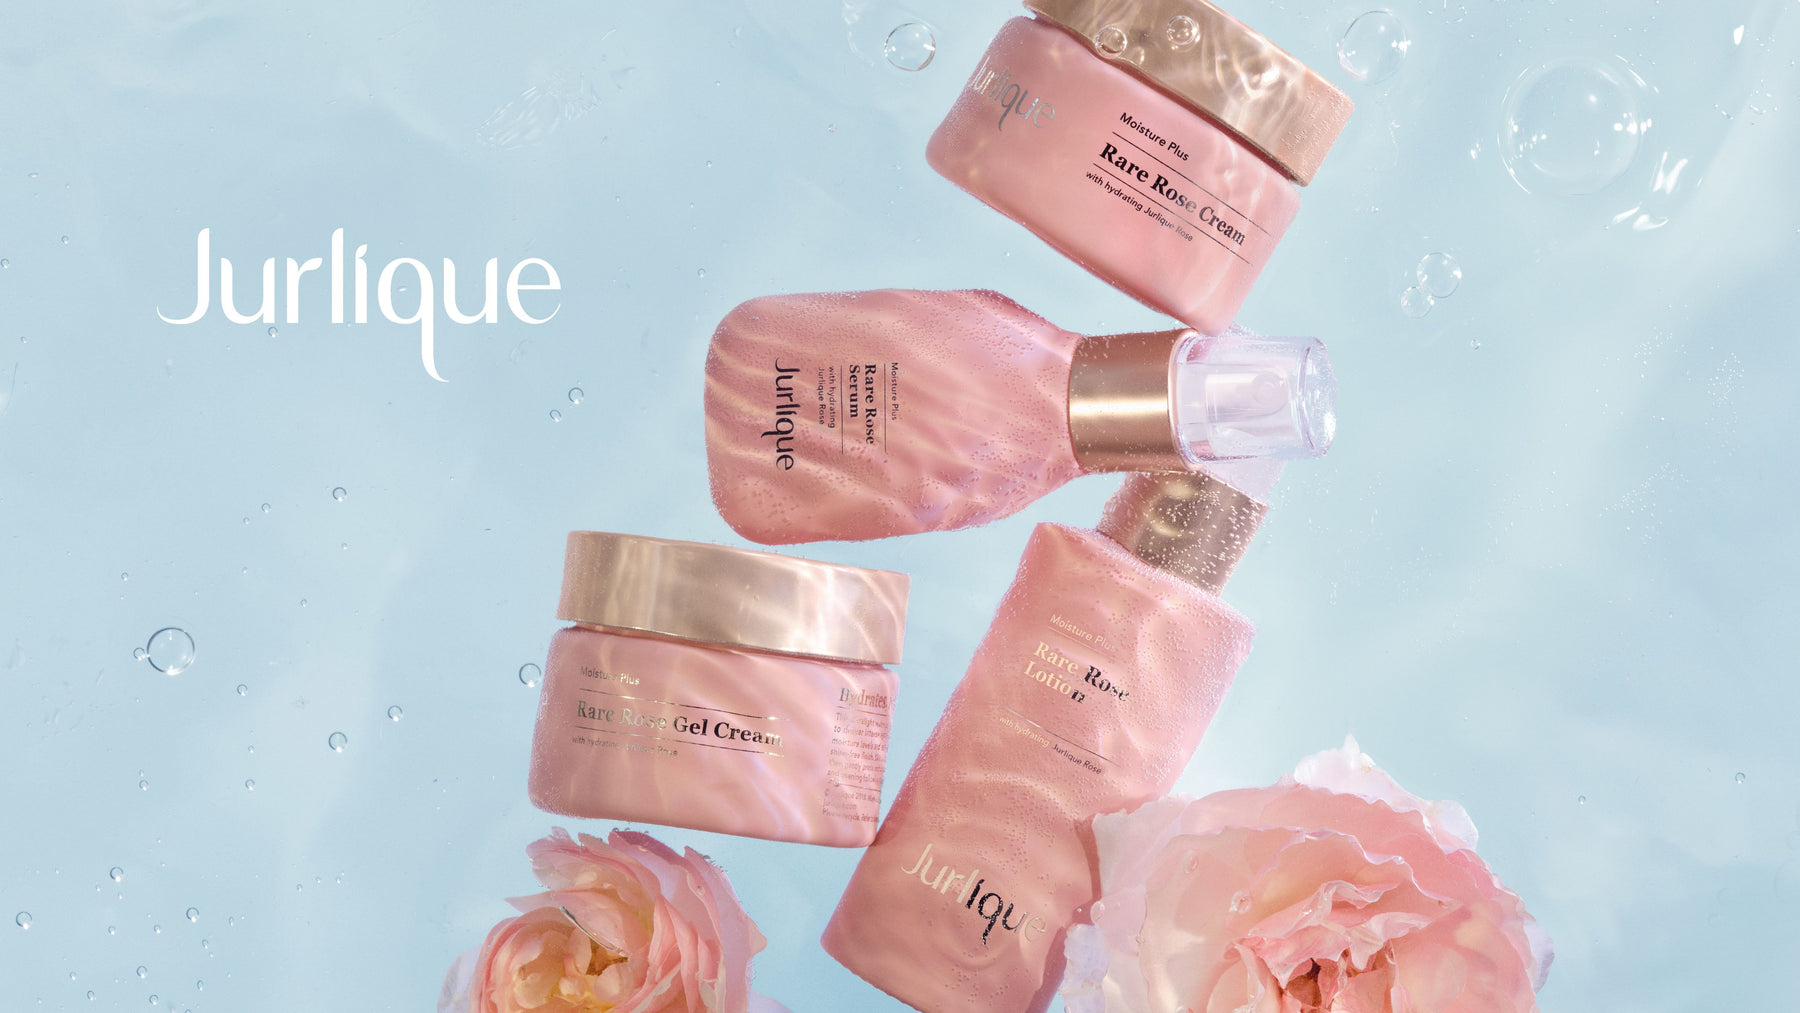 Jurlique New Moisture Plus Rare Rose Collection. Clinically proven to deliver 24-hour hydration.